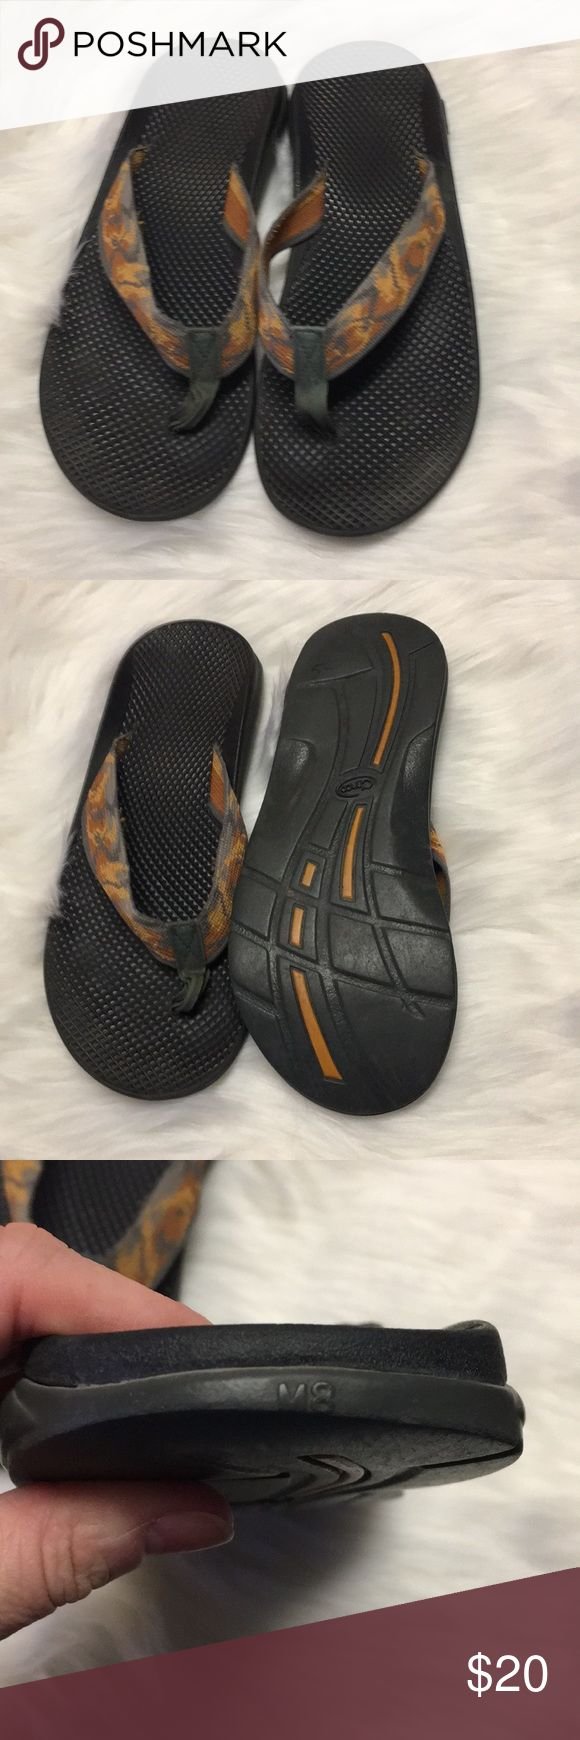 Men's Chaco flip flops Men's size 8 Chacos with an orange and green foot strap. Great summer flip flops. Wear shown to soles as pictured. Chaco Shoes Sandals & Flip-Flops